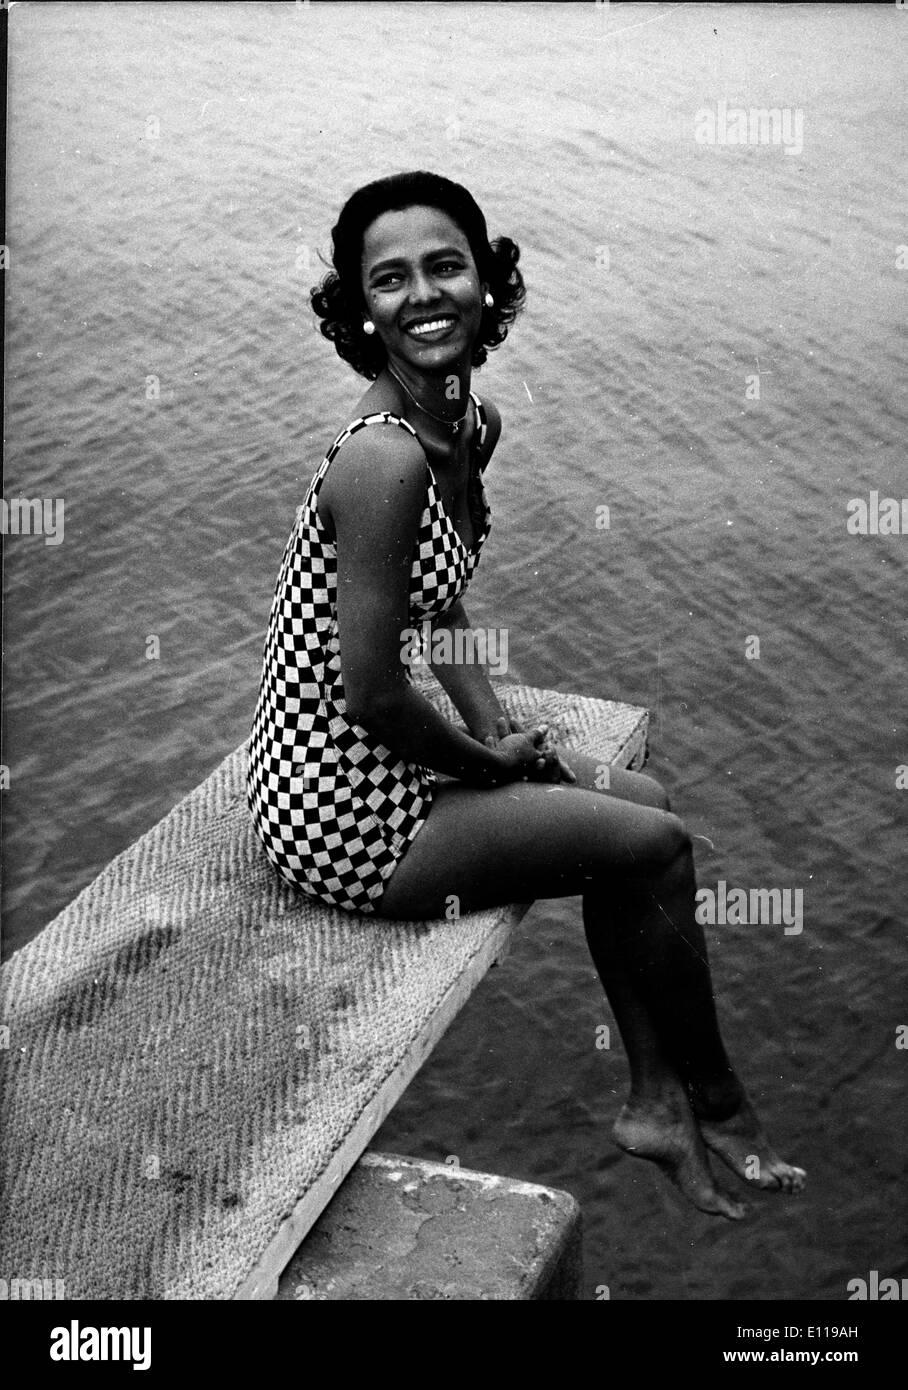 actress dorothy dandridge poses on diving board stock photo